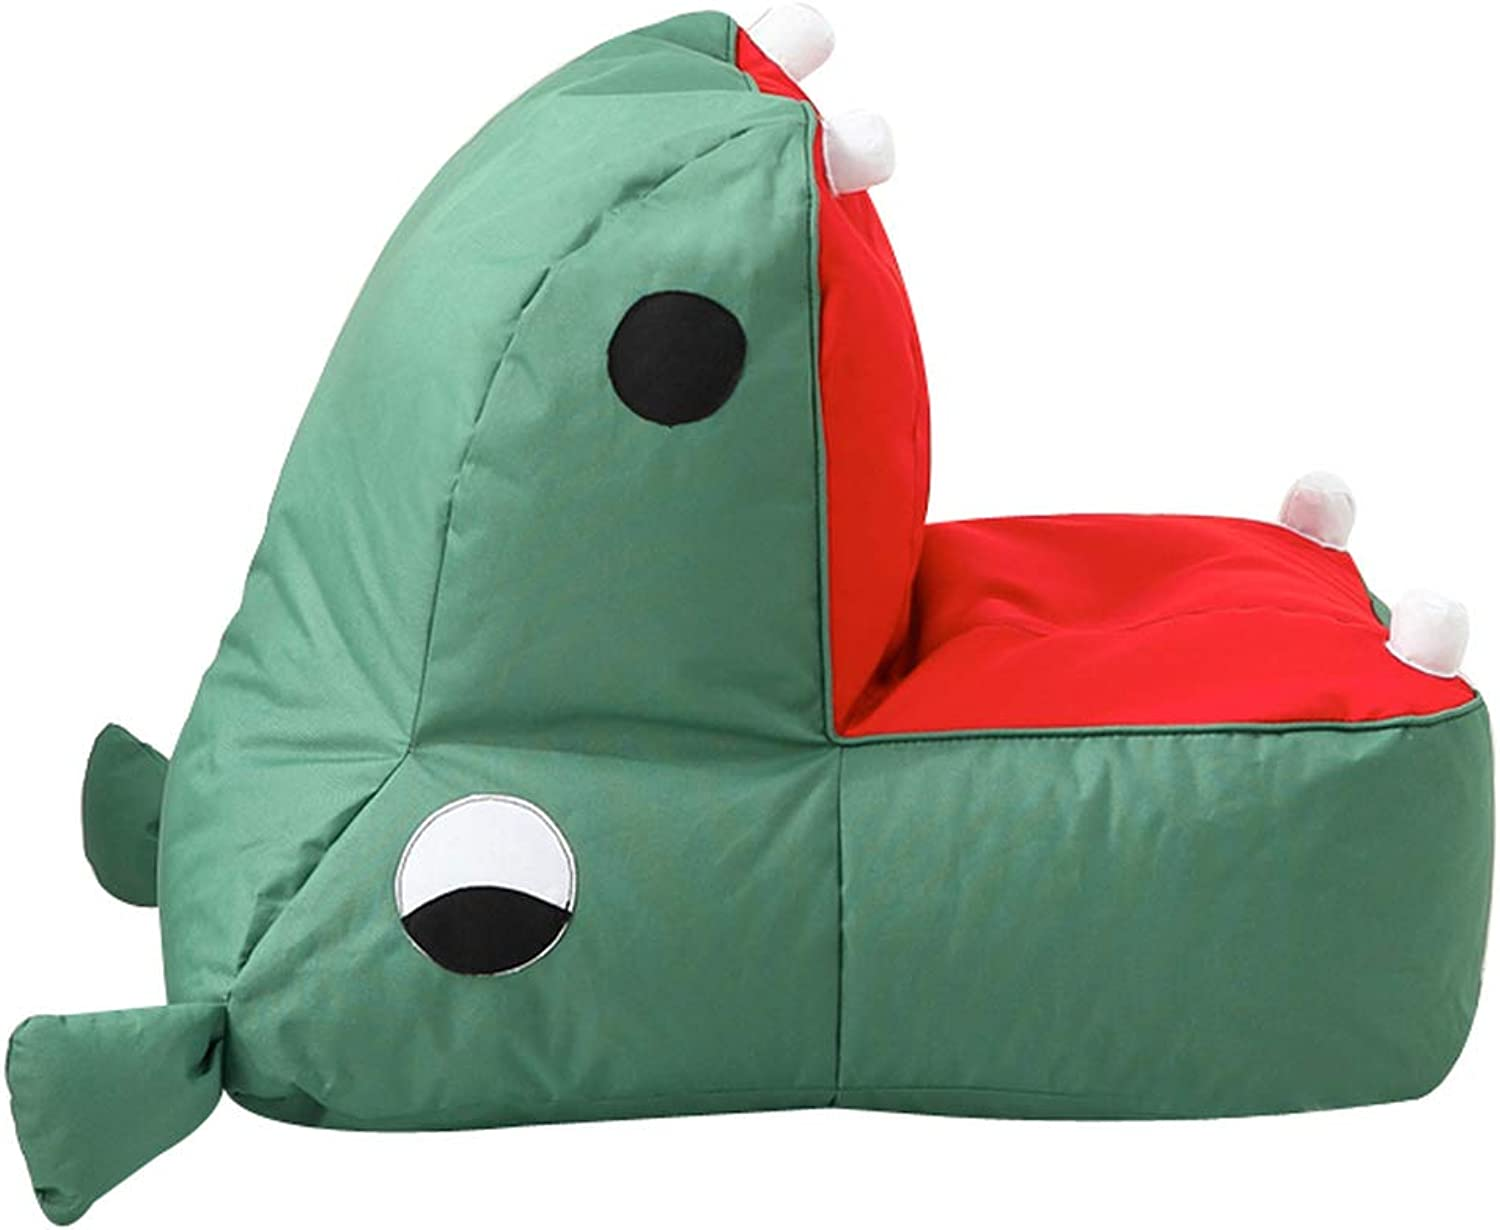 Green Solid Bean Bag Chair Availiable for Kids and Adults in Great for Any Room Chair Bean Bag Chair